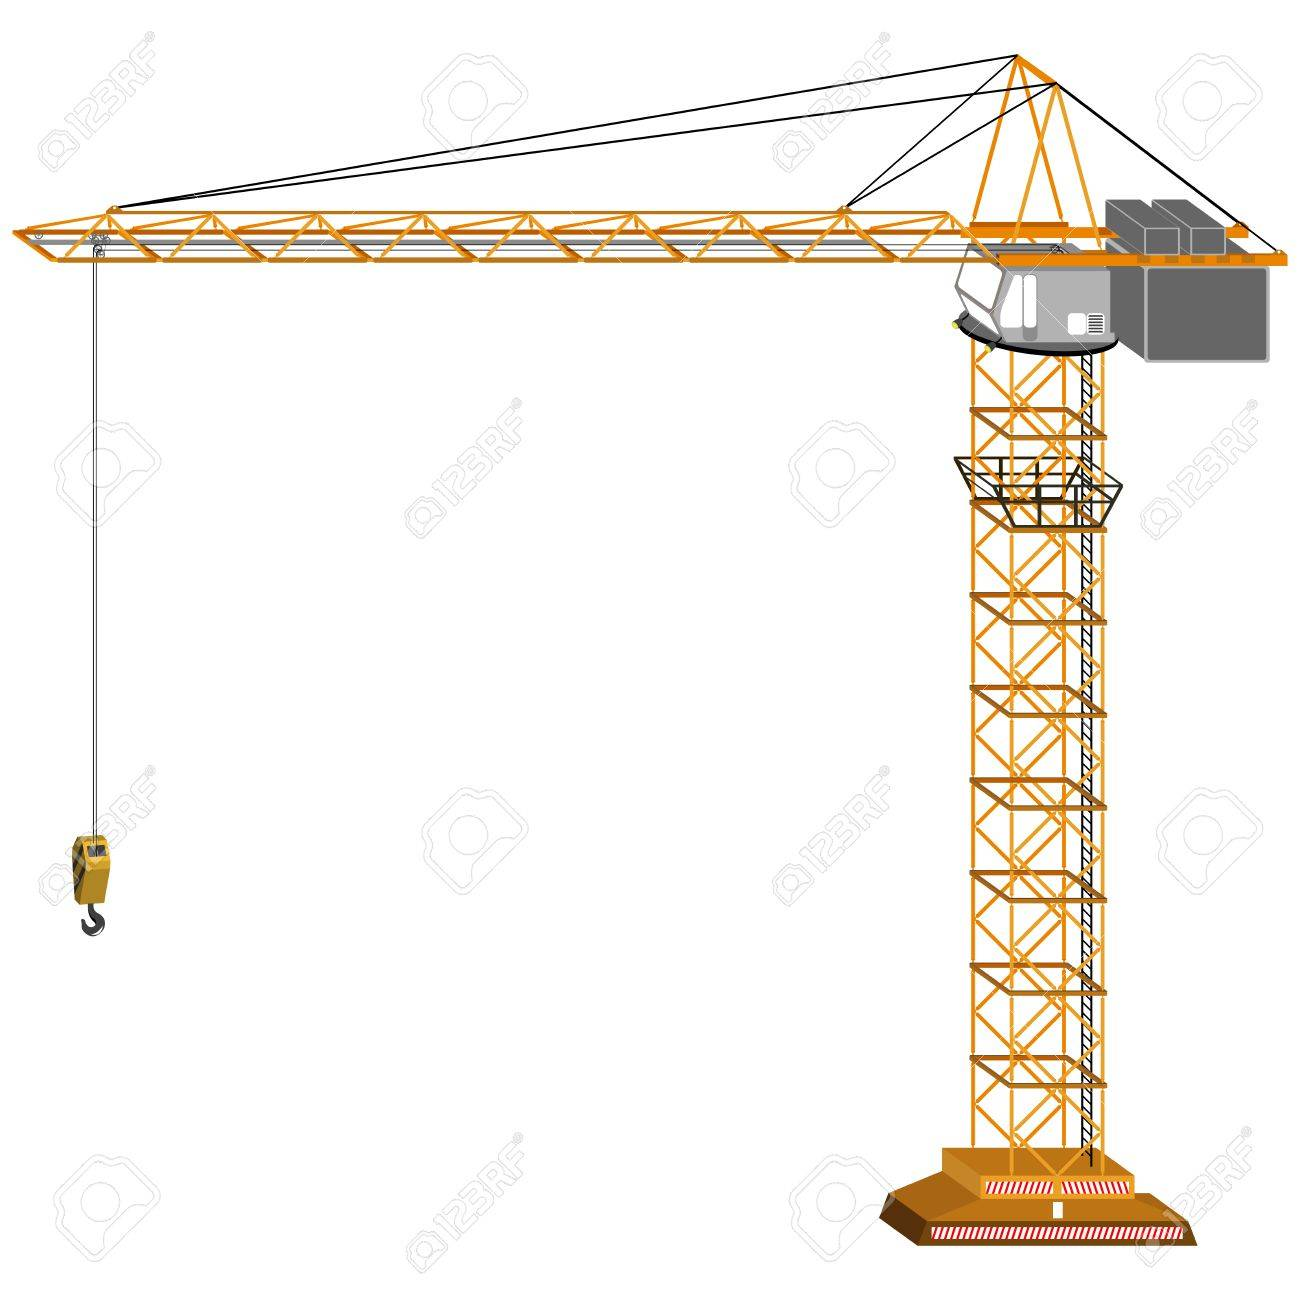 1300x1300 Tridimensional Crane Drawing, Isolated On White Background